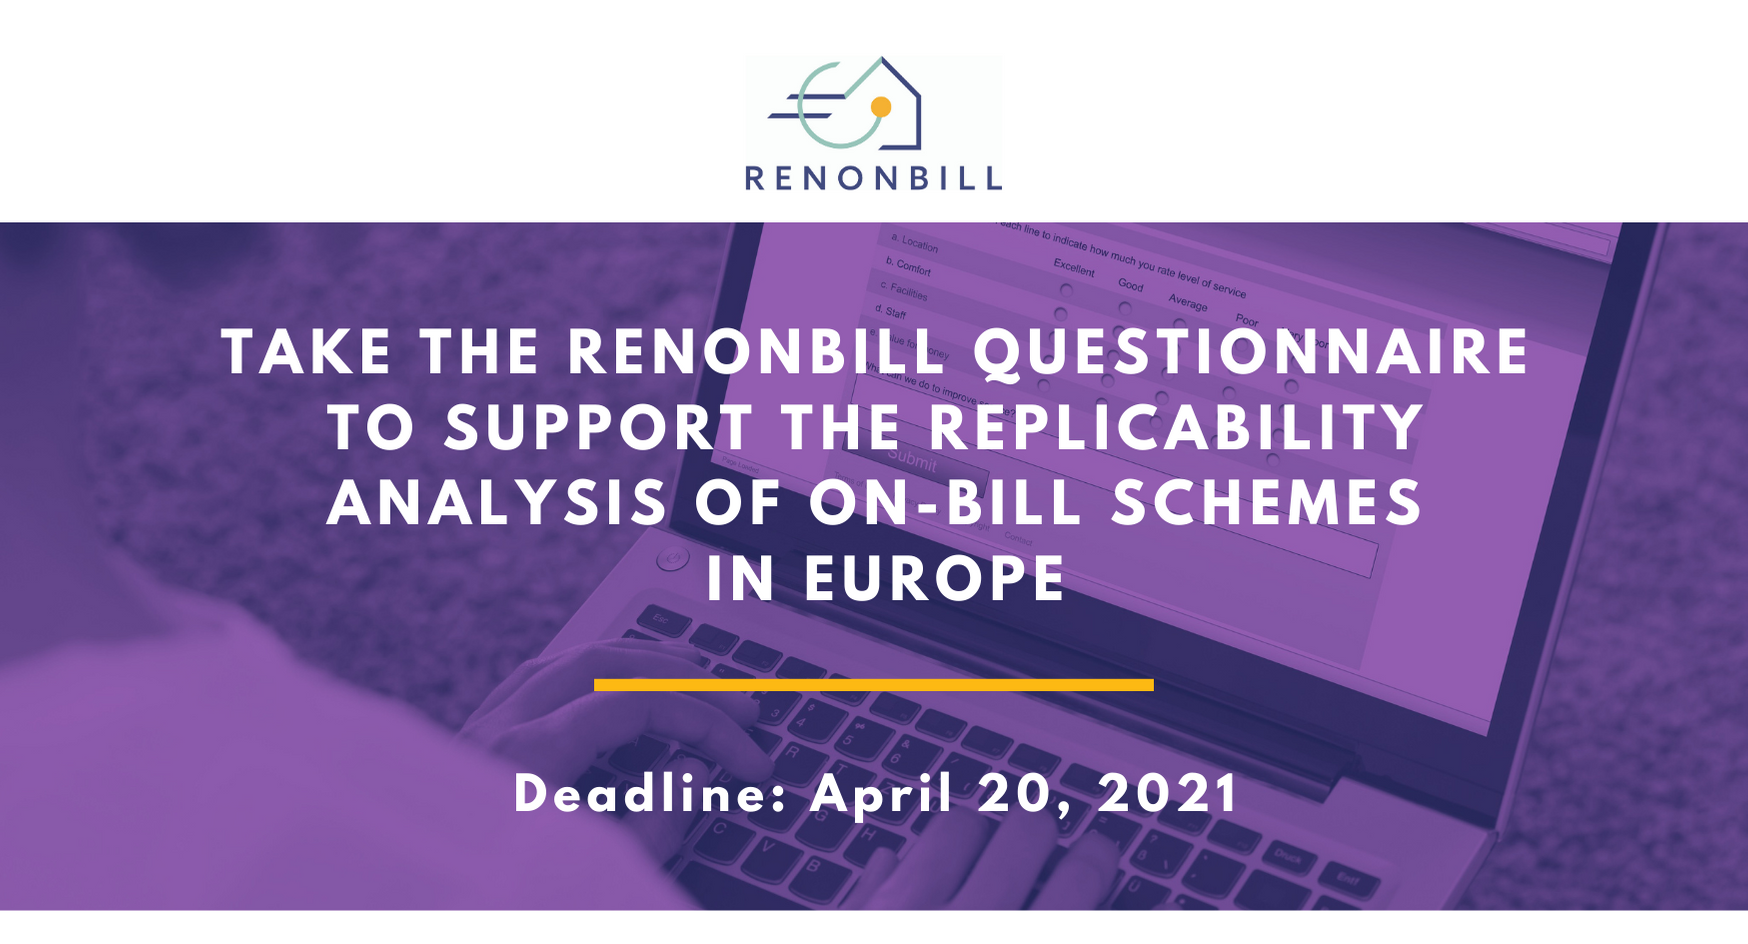 RenOnBill calls on energy utilities and financial institutions to fill in a questionnaire helping on-bill replicability in Europe